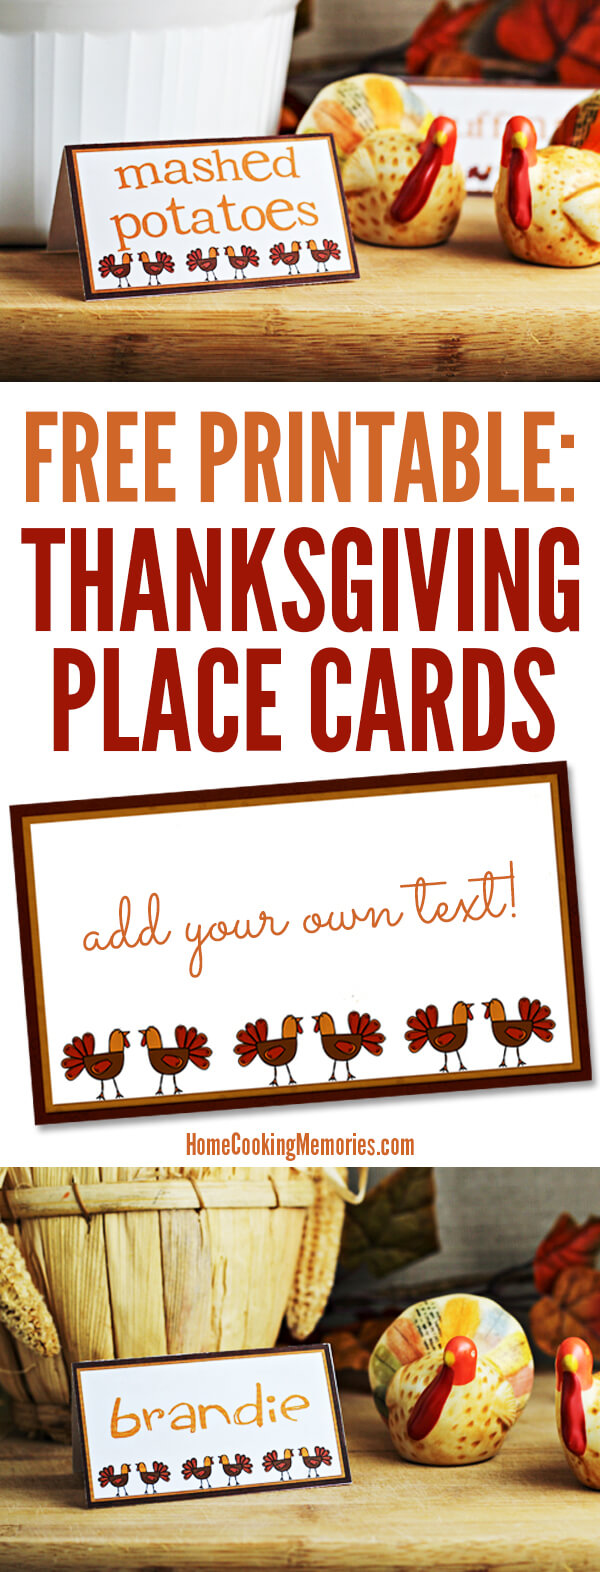 Free Printables: Thanksgiving Place Cards - Home Cooking Pertaining To Thanksgiving Place Cards Template